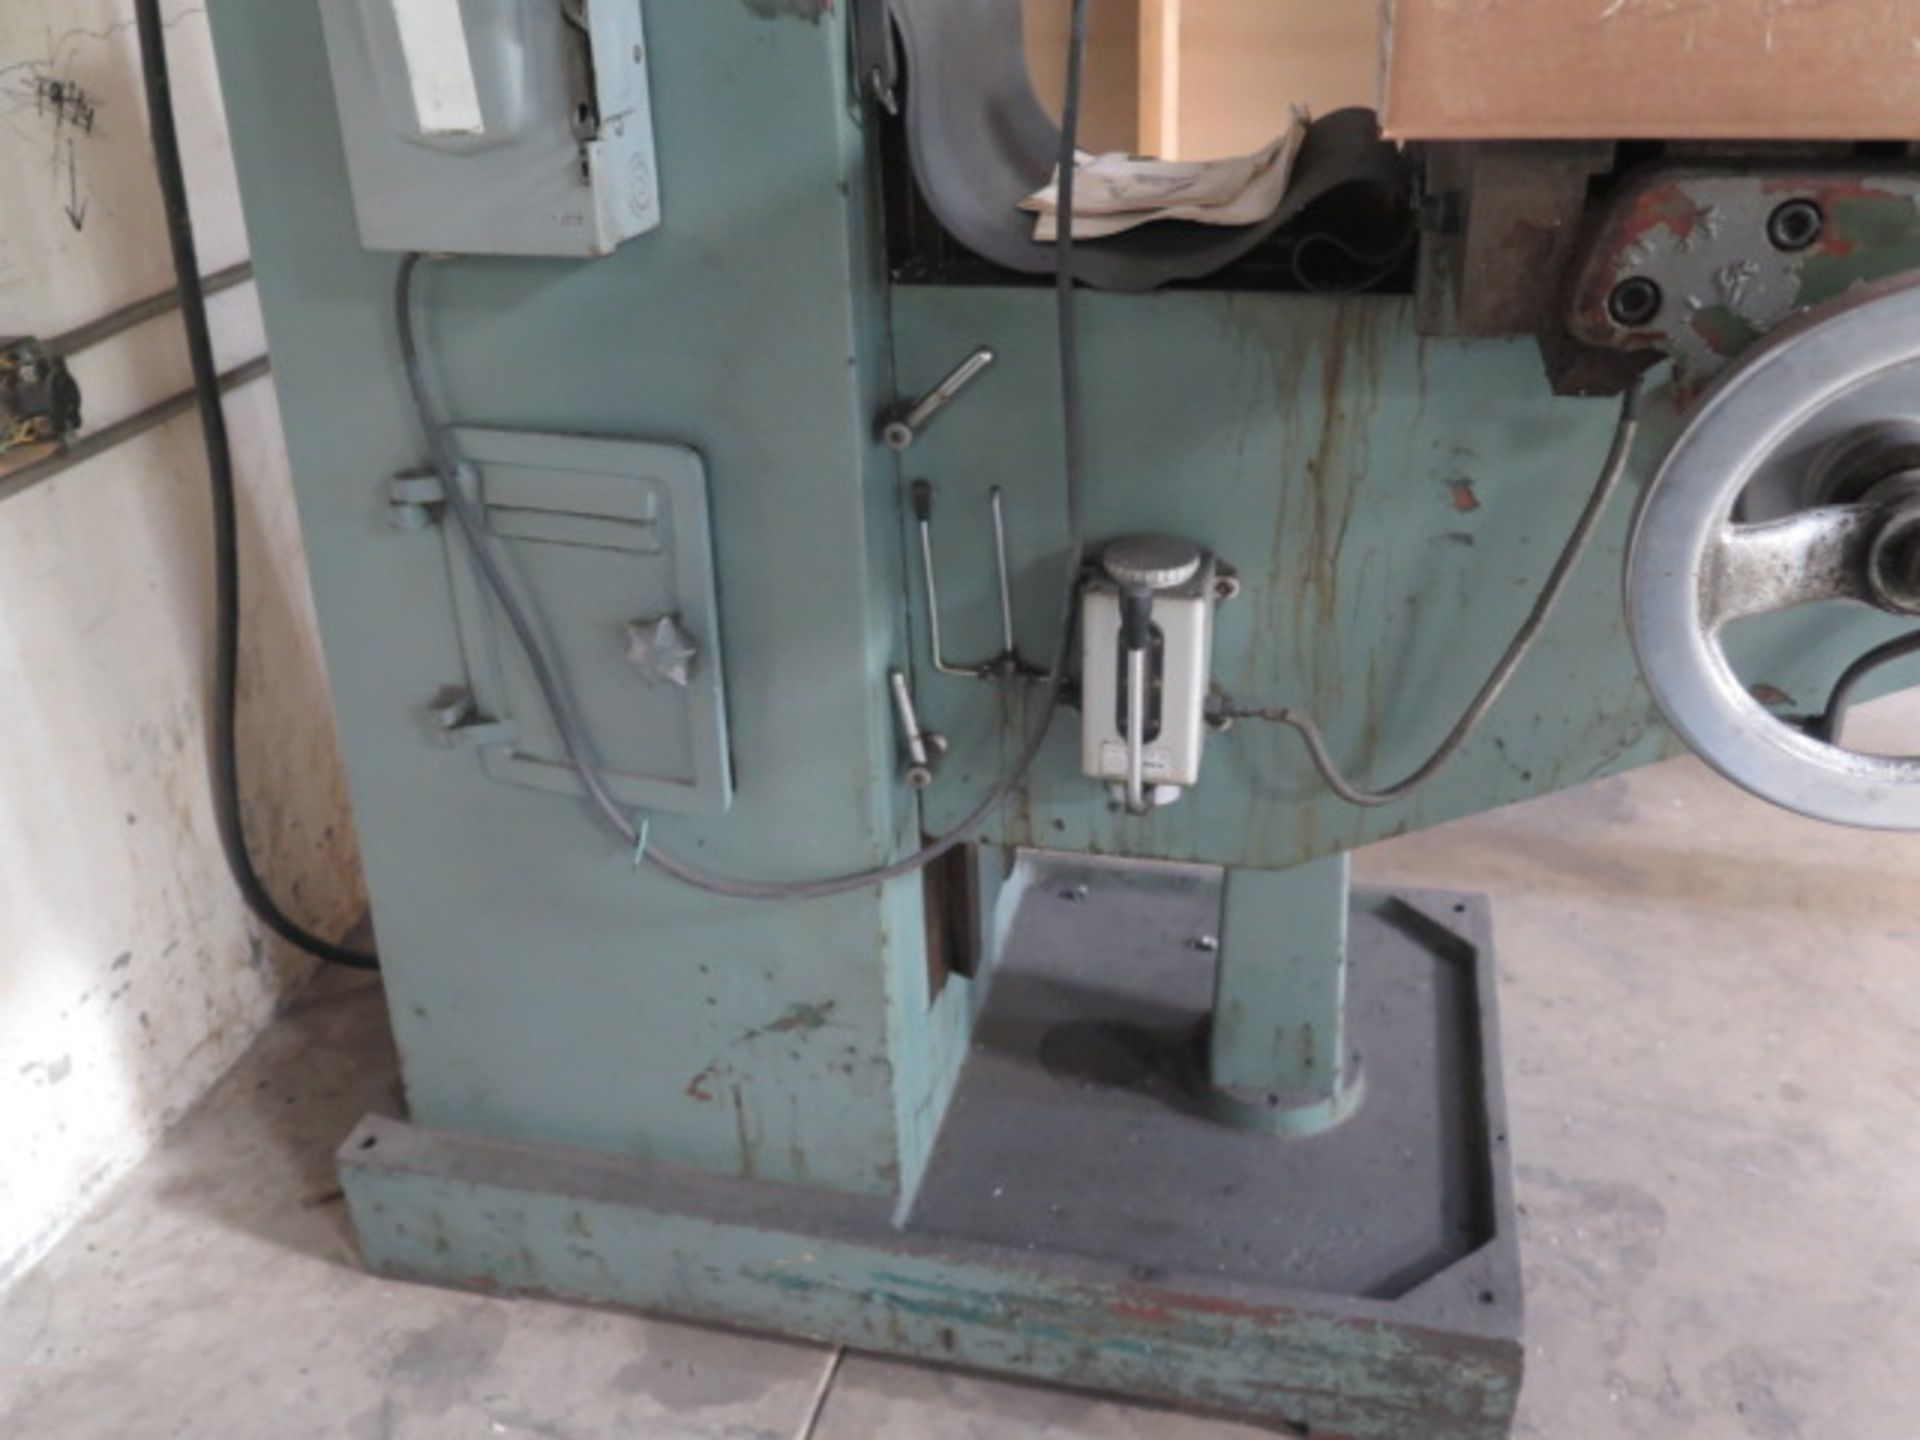 """Import Vertical Mill w/ 3Hp Motor, 80-2720 RPM, 8-Speeds, R8 Spindle, 10"""" x 48"""" Table (SOLD AS- - Image 9 of 9"""